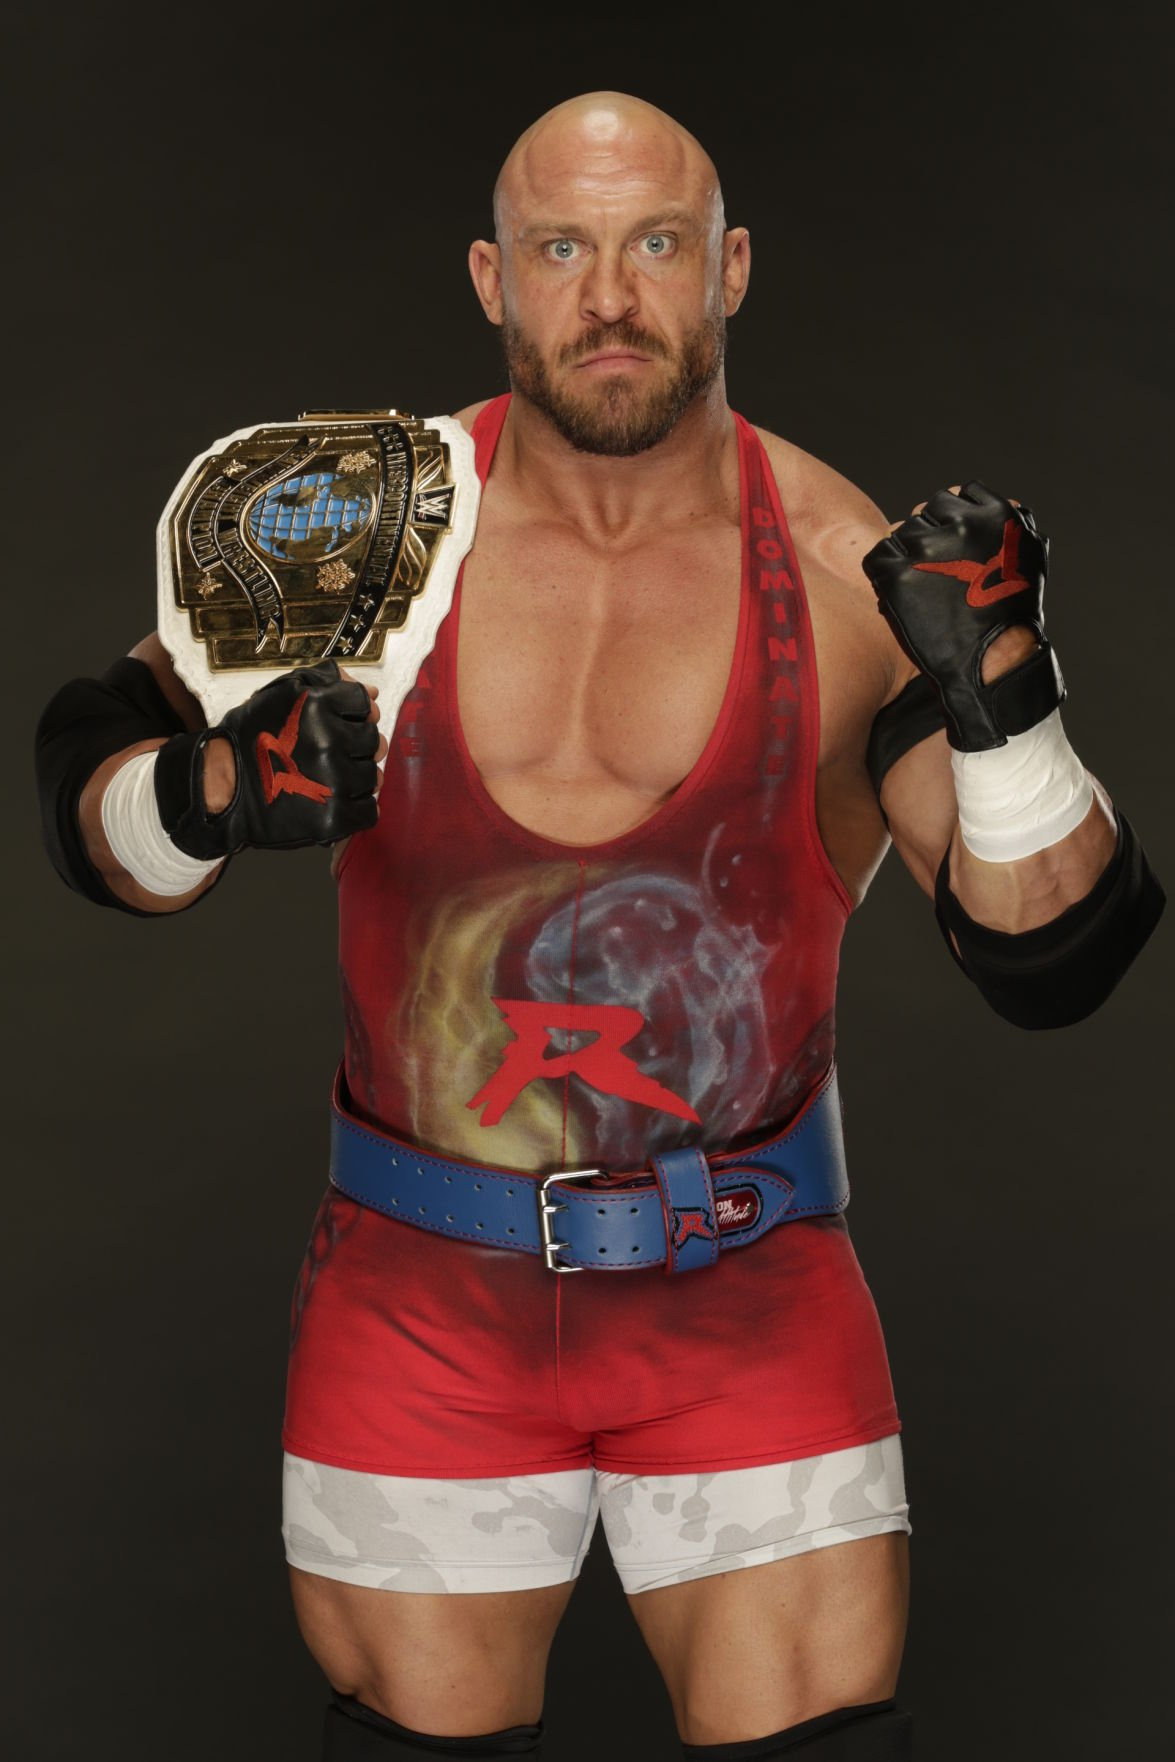 Wwe Wrestler Ryback Seizes A Second Chance Arts And Theater